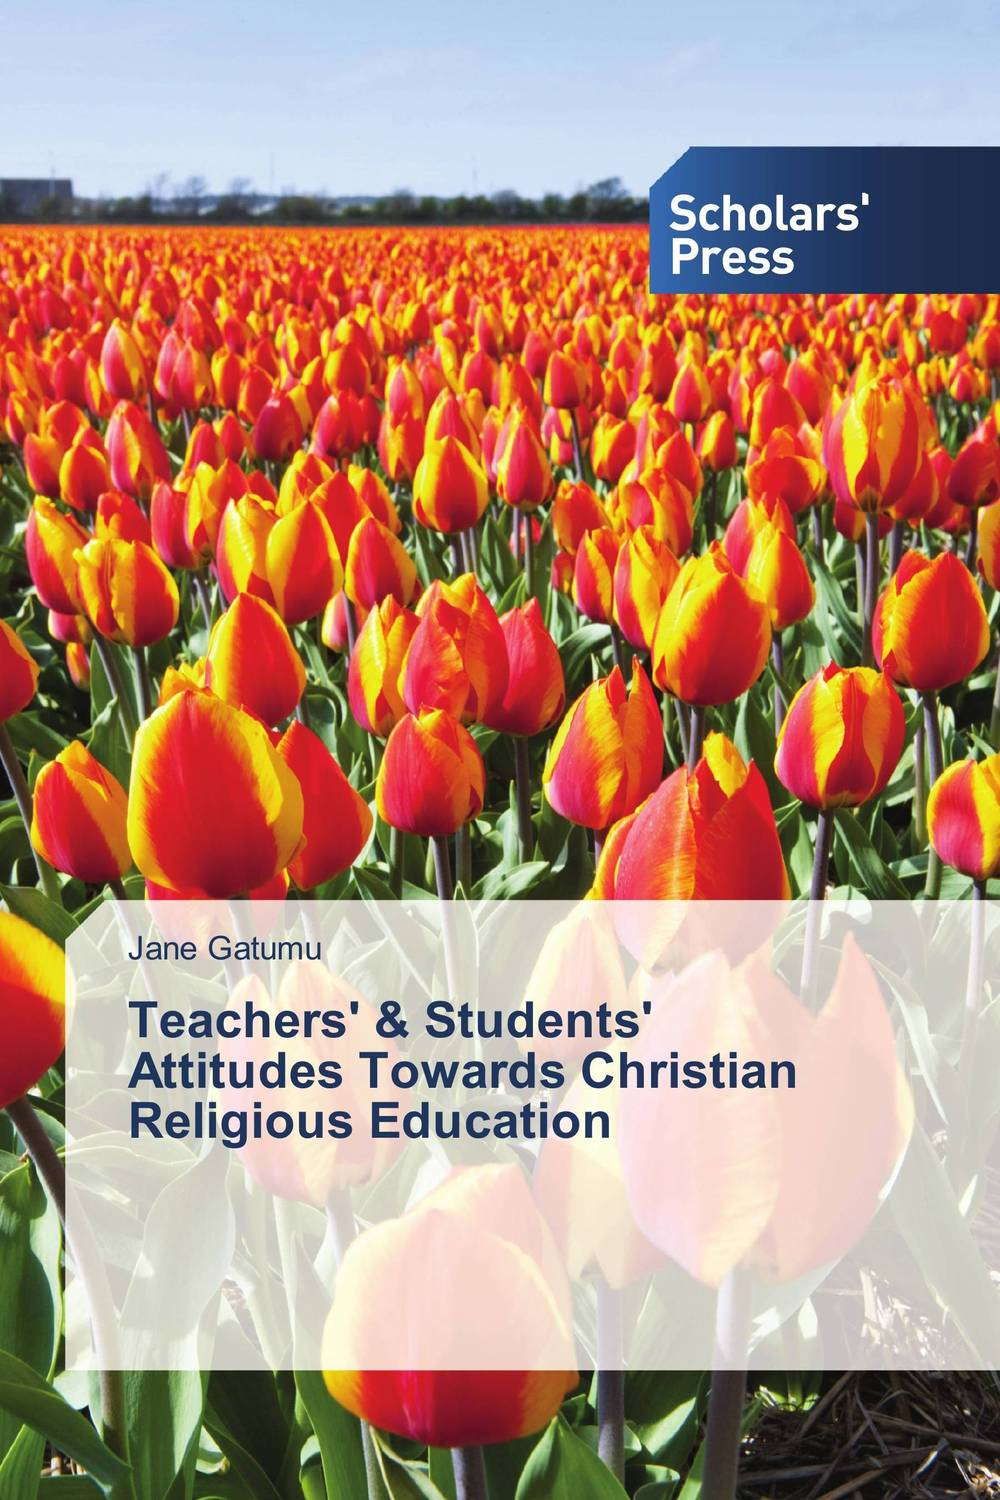 Teachers' & Students' Attitudes Towards Christian Religious Education in a state of being religious abdullahi an na im and the secular